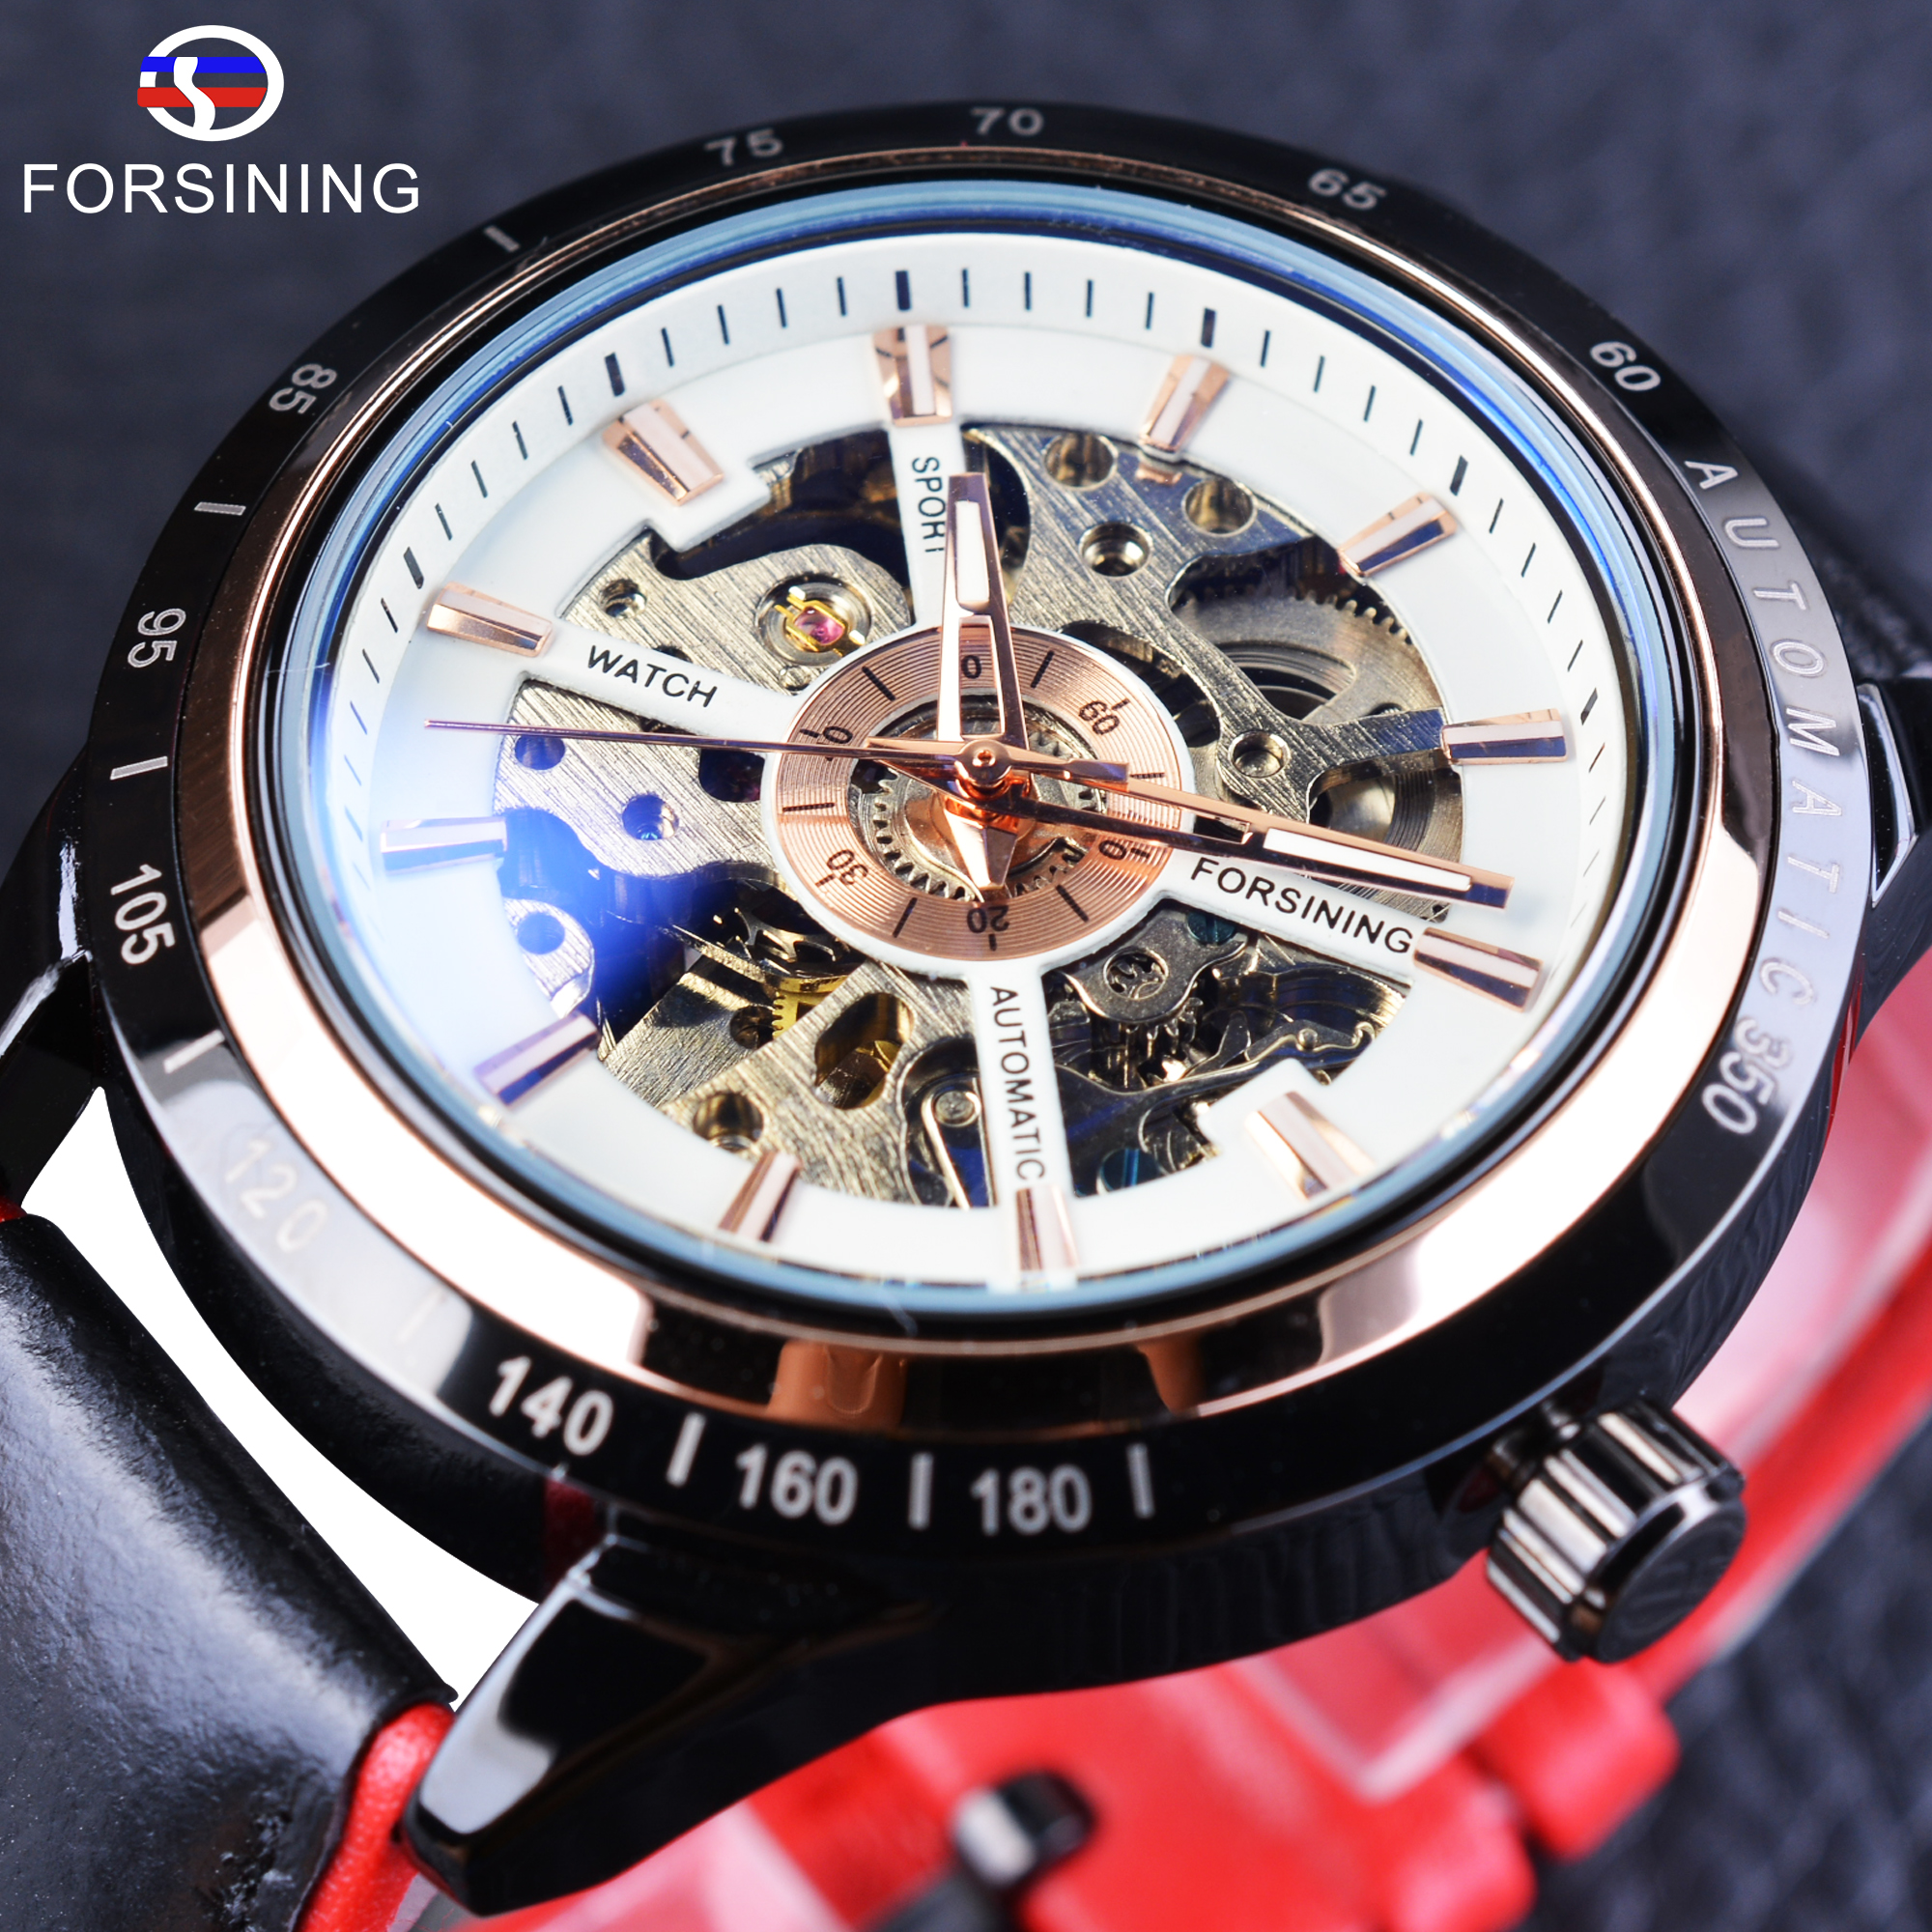 Forsining 2017 Sport Watches Waterproof White Skeleton Black Case Automatic Wrist Watch Men's Watches Top Luxury Brand Clock Men forsining 3d skeleton twisting design golden movement inside transparent case mens watches top brand luxury automatic watches